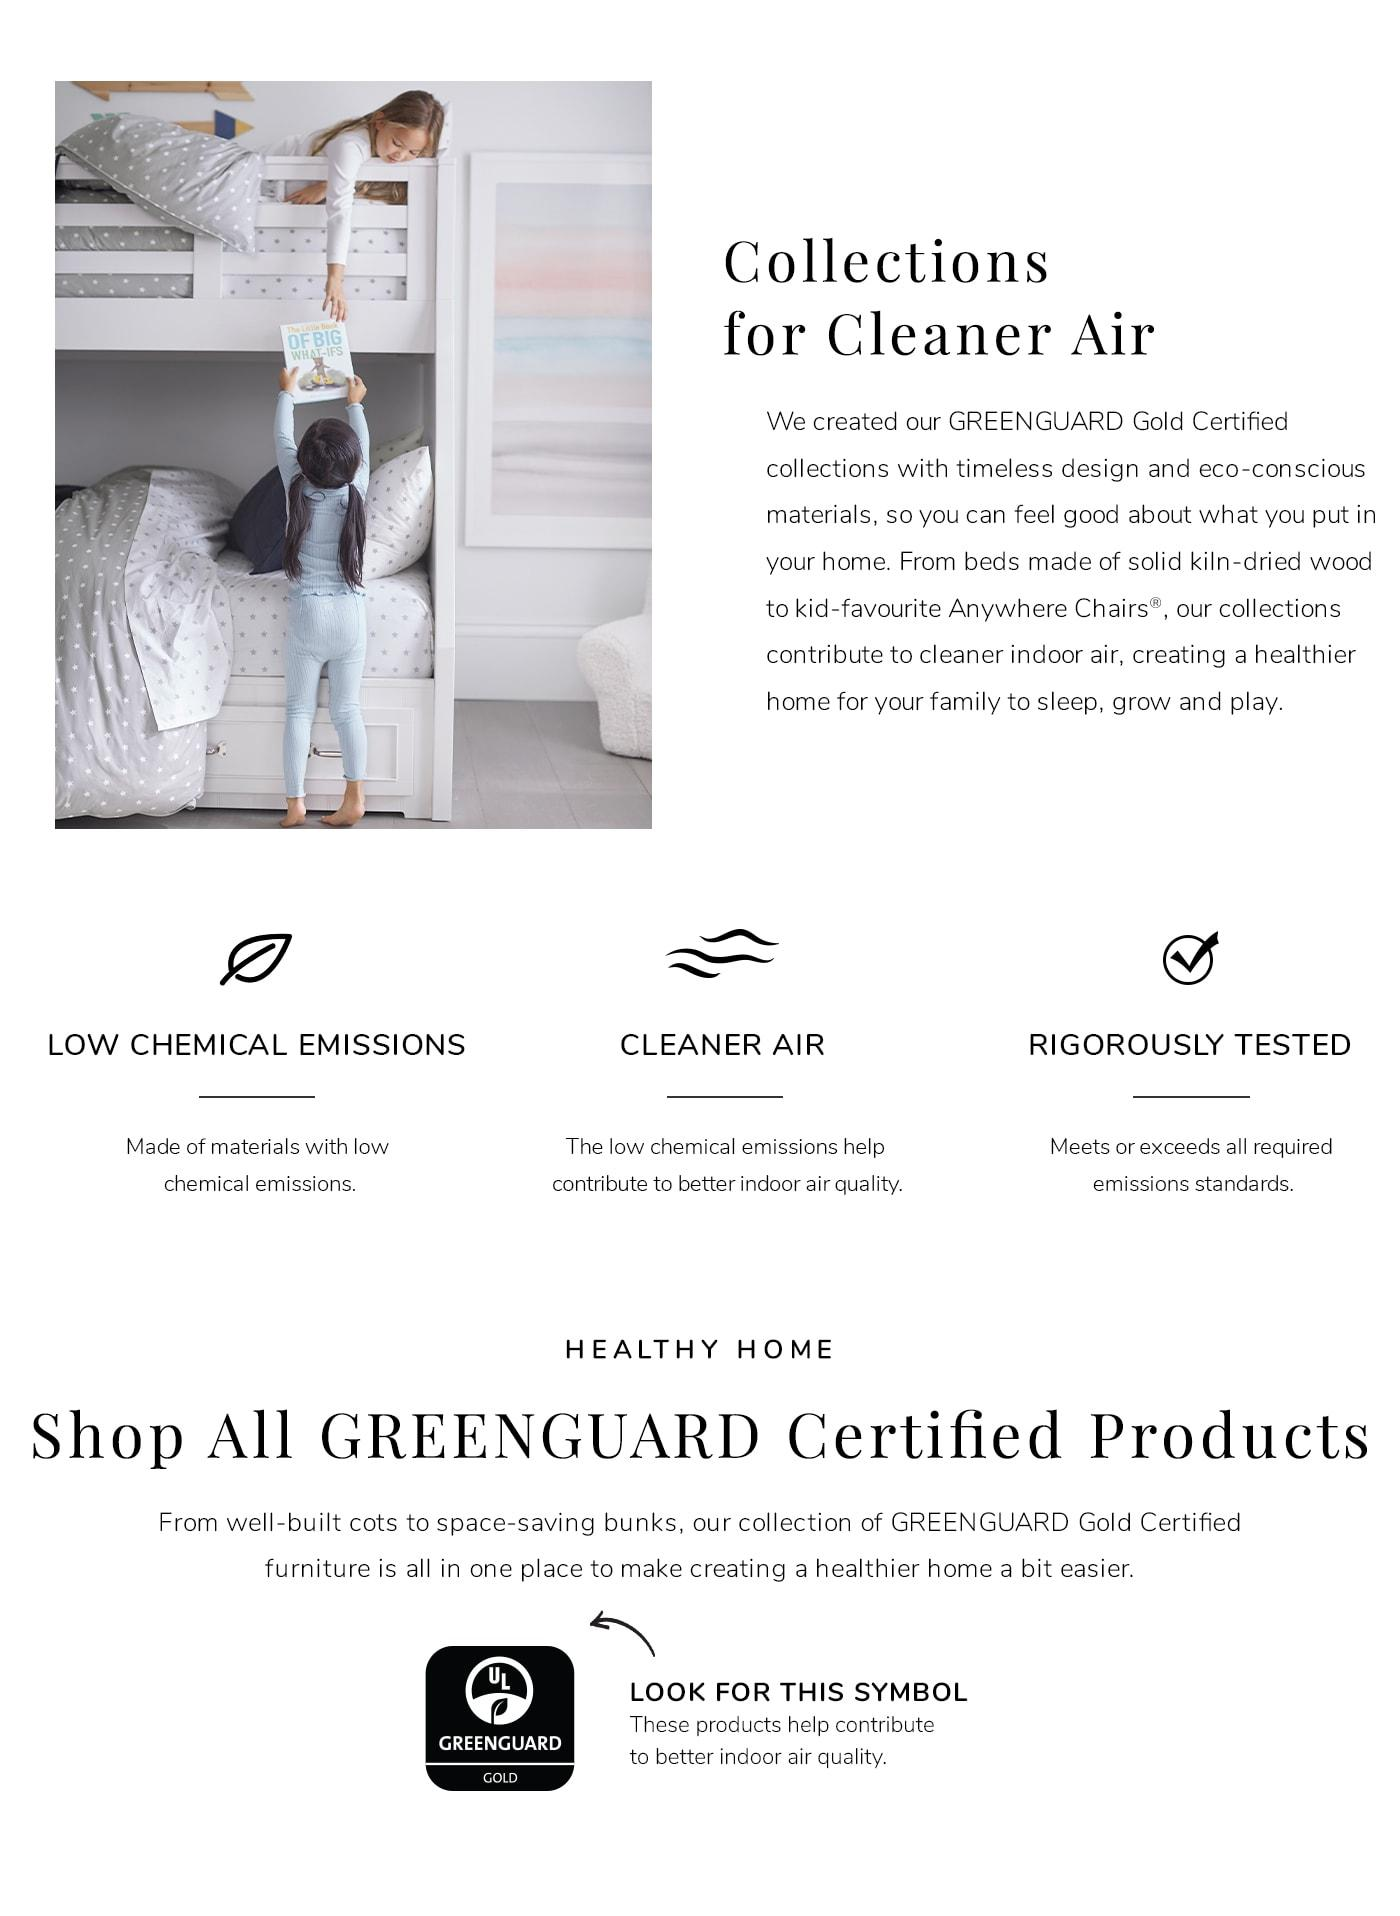 Collections For Cleaner Air